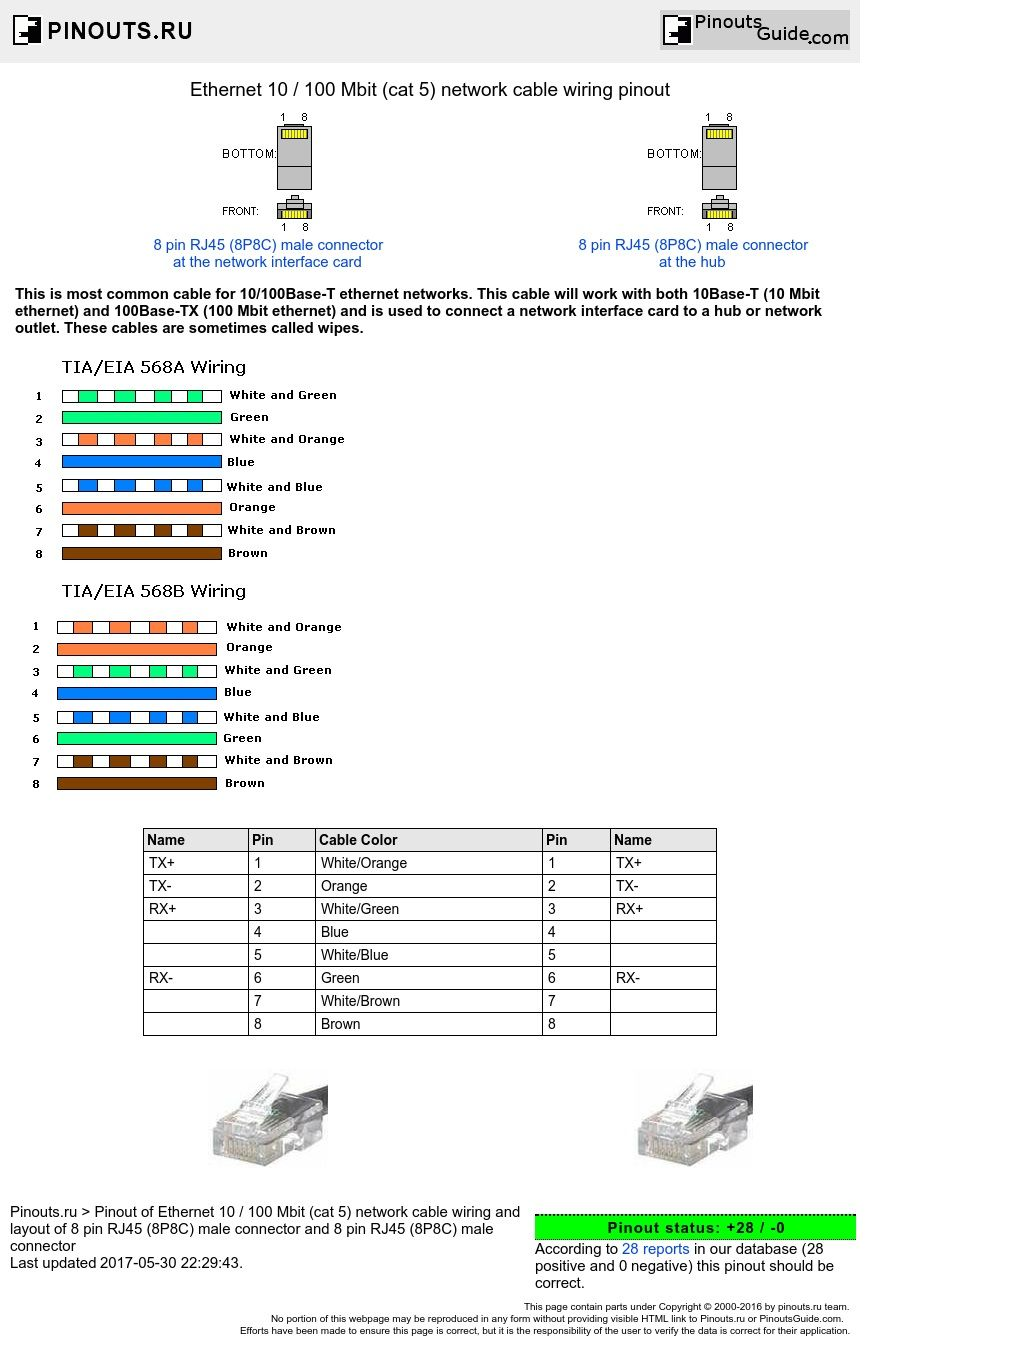 Internet Cable Wiring Diagram Home Electrical In India Ethernet 10 100 Mbit Cat 5 Network